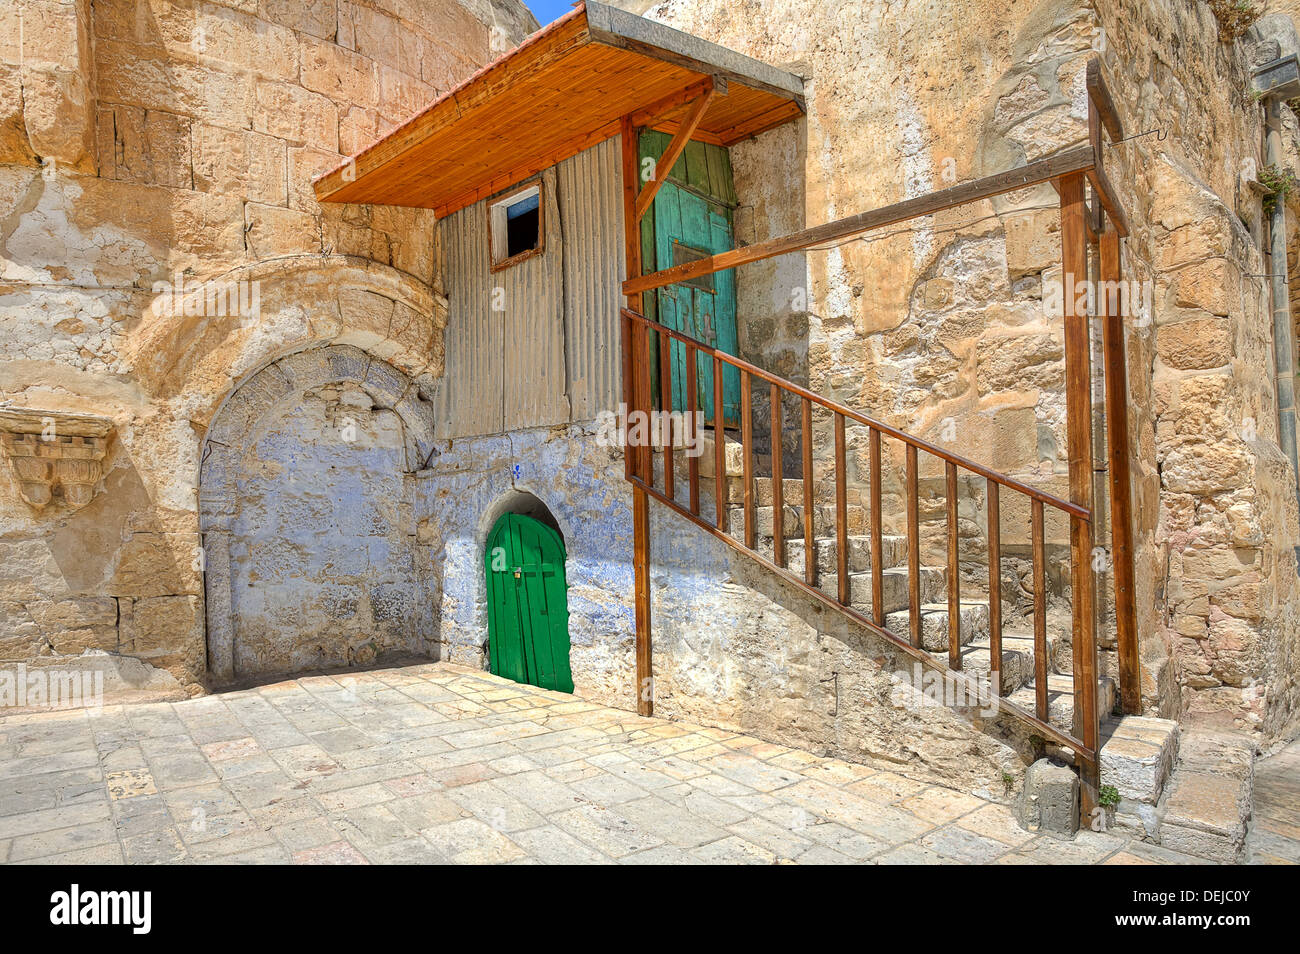 Small cell of the Coptic Orthodox Church situated on the roof of the Church of the Holy Sepulchre in Jerusalem, Israel. - Stock Image